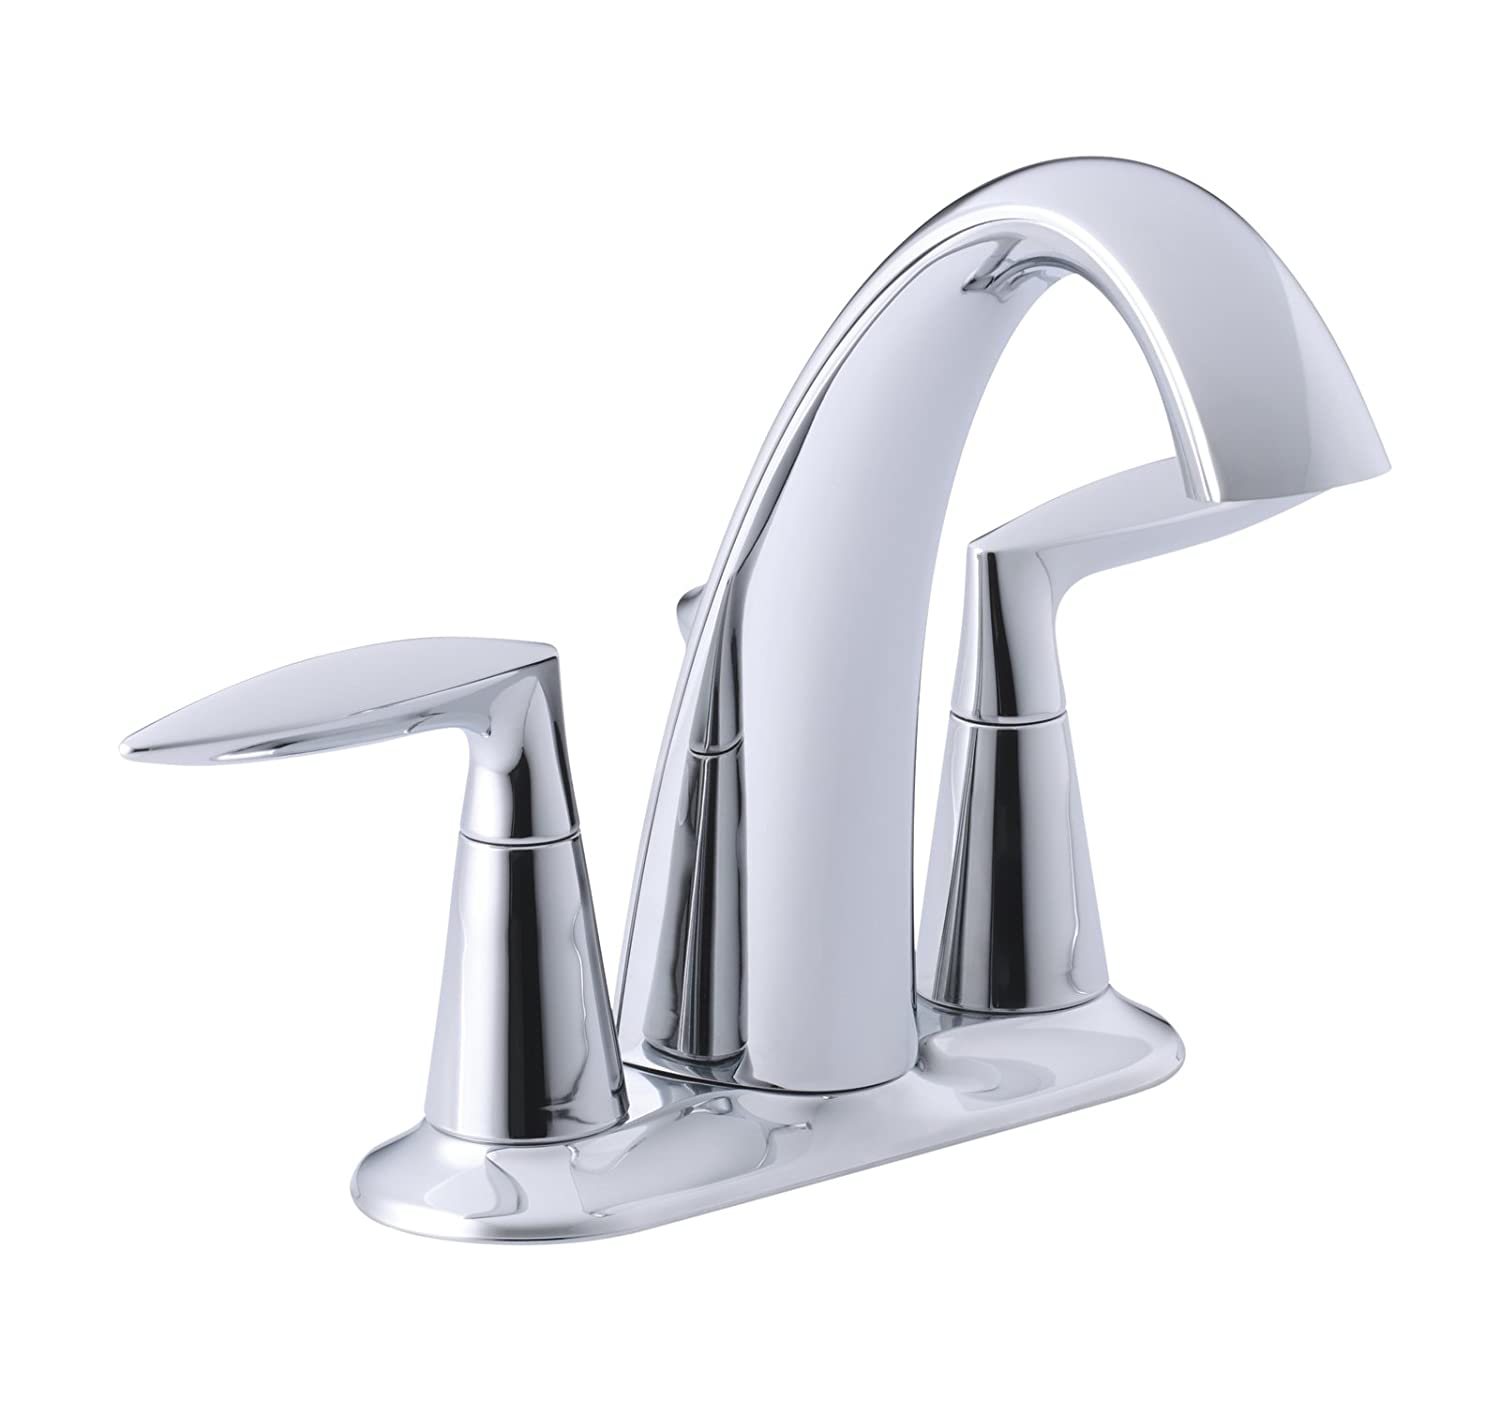 New moen bathroom sink faucet bathroom interior design Amazon bathroom faucets moen